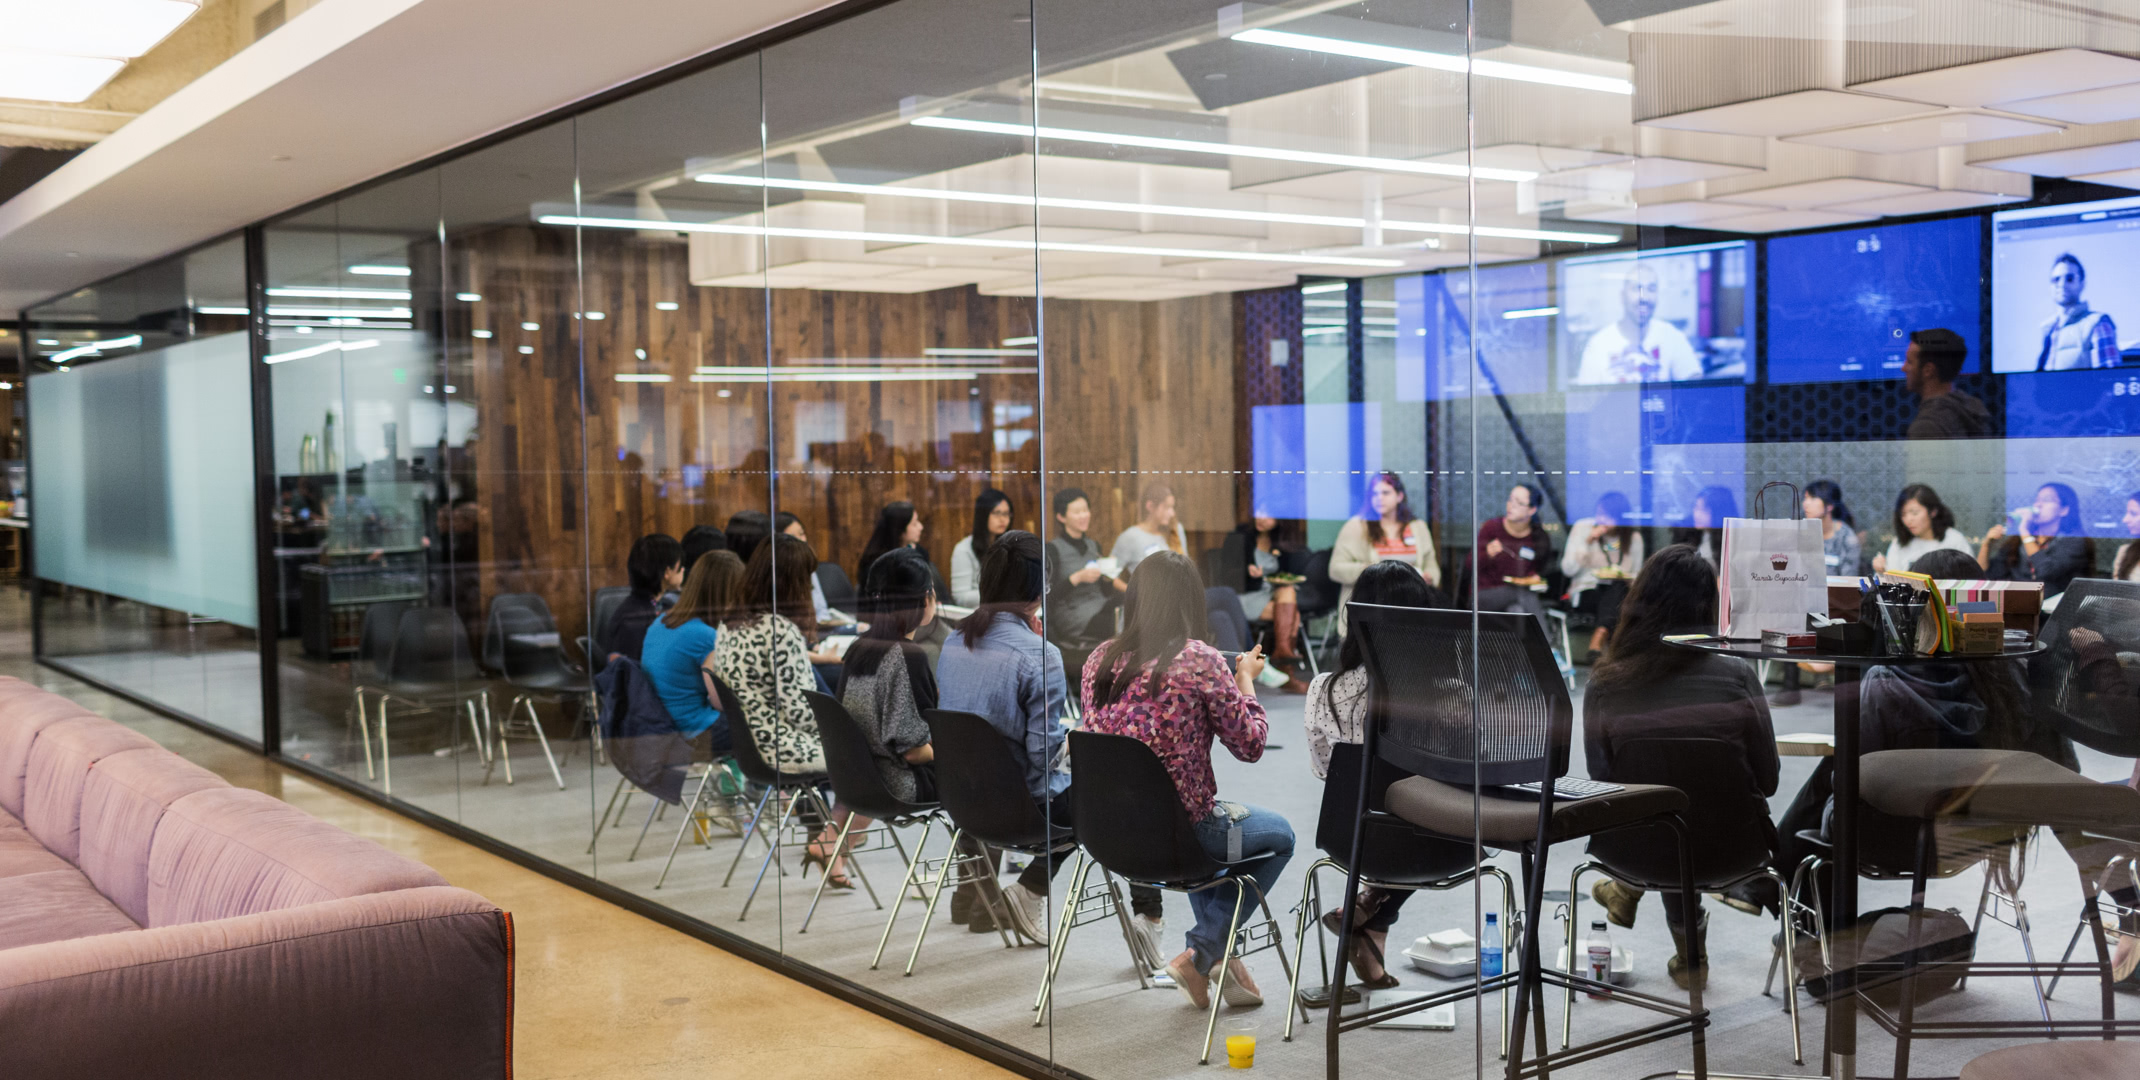 Employees In Conversation While A Large Glass Conference Room Ubers San Francisco Headquarters